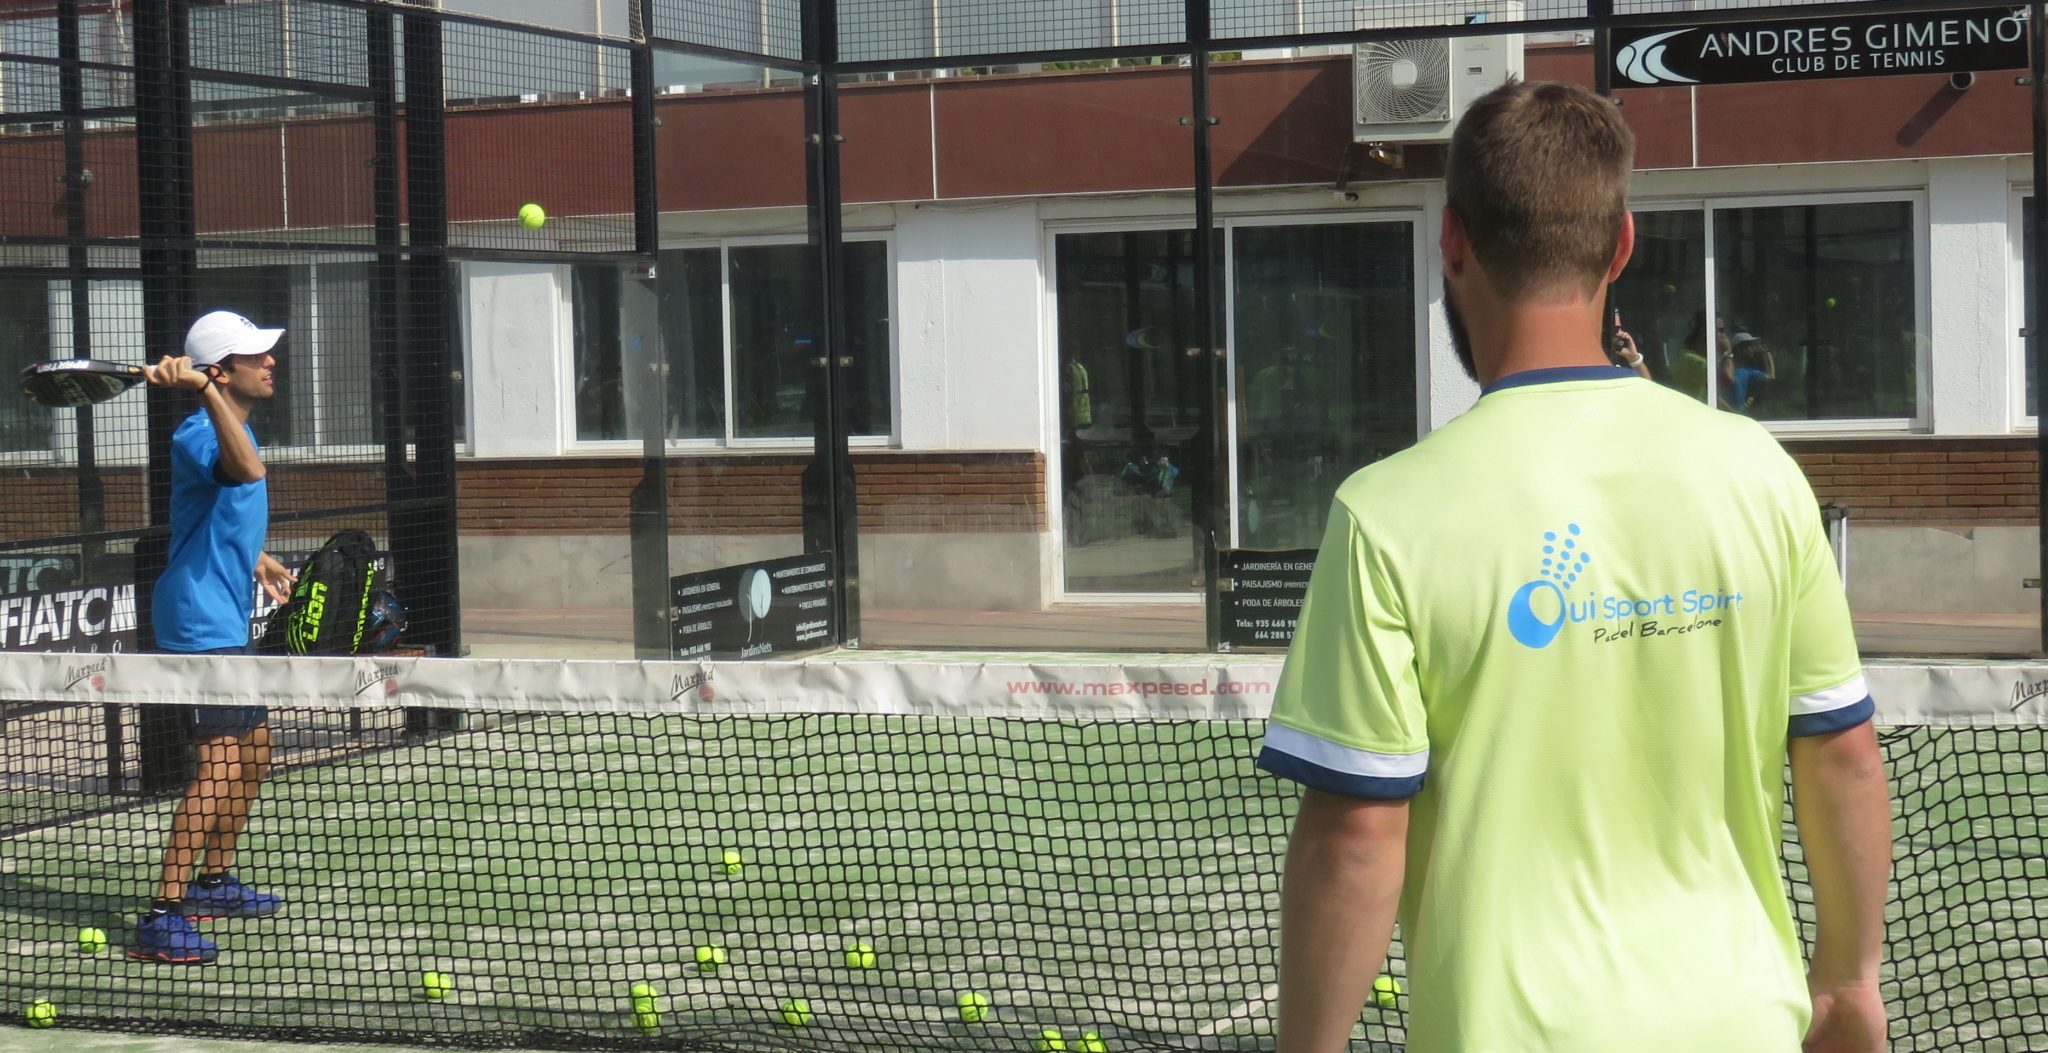 Stage de padel traditionnel – OuiSportspirit Barcelone